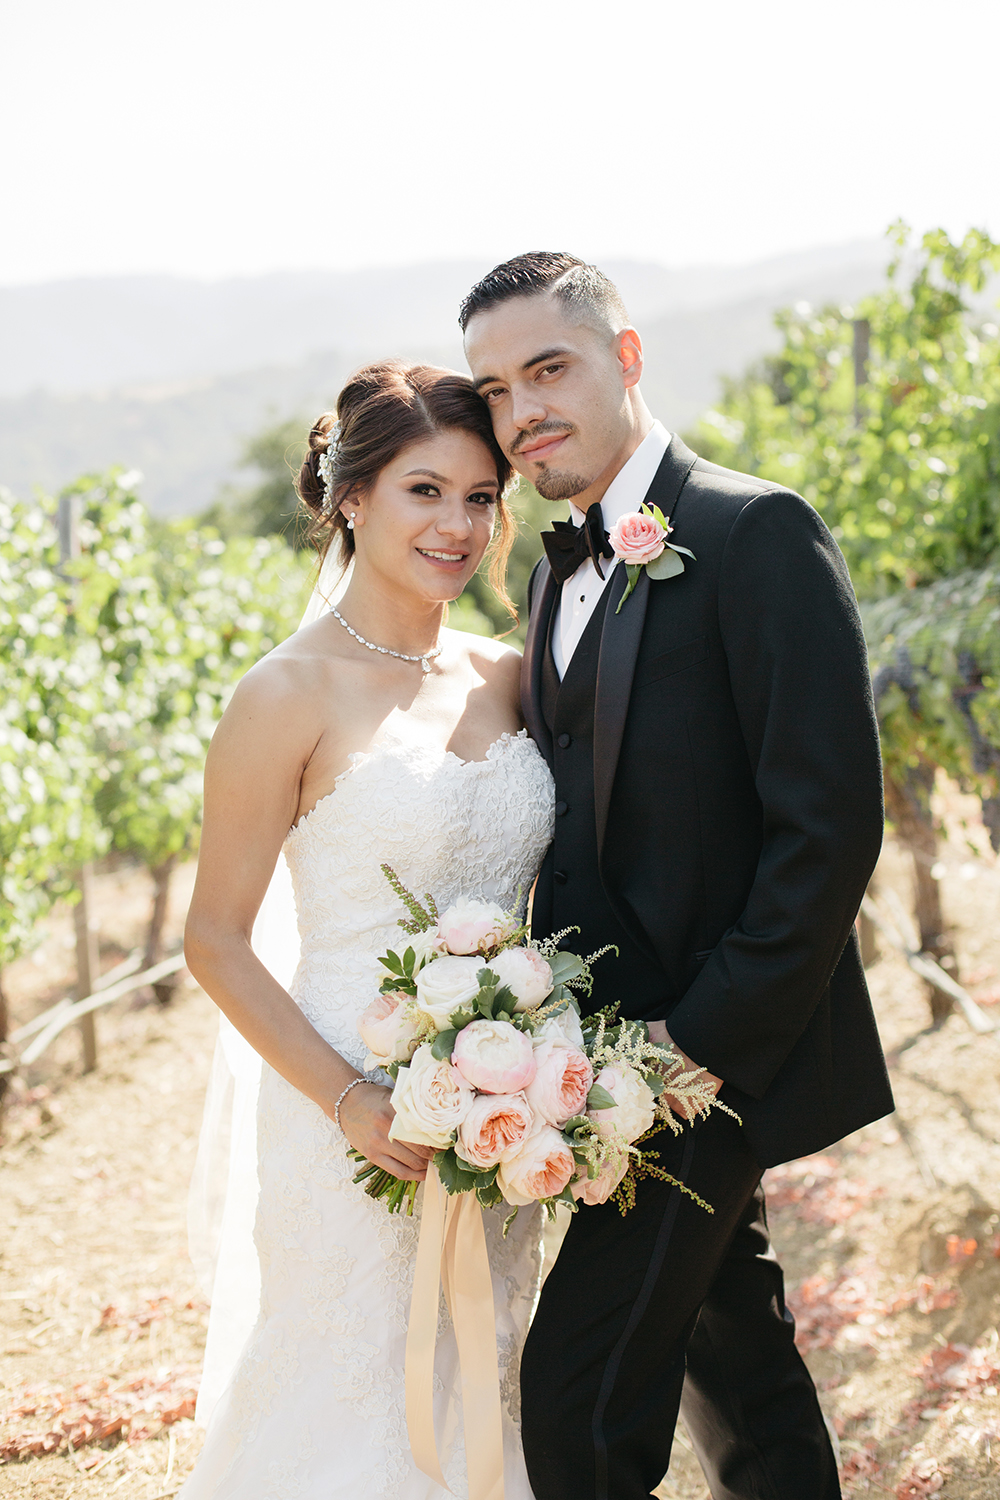 Modern bride and groom at their vineyard wedding in Saratoga, California.